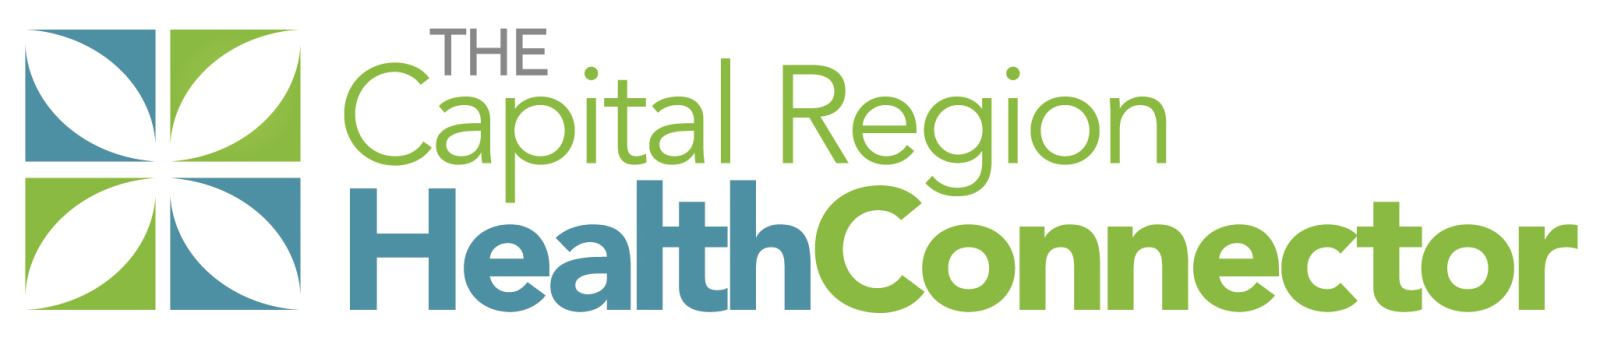 capital Region HealthConnector